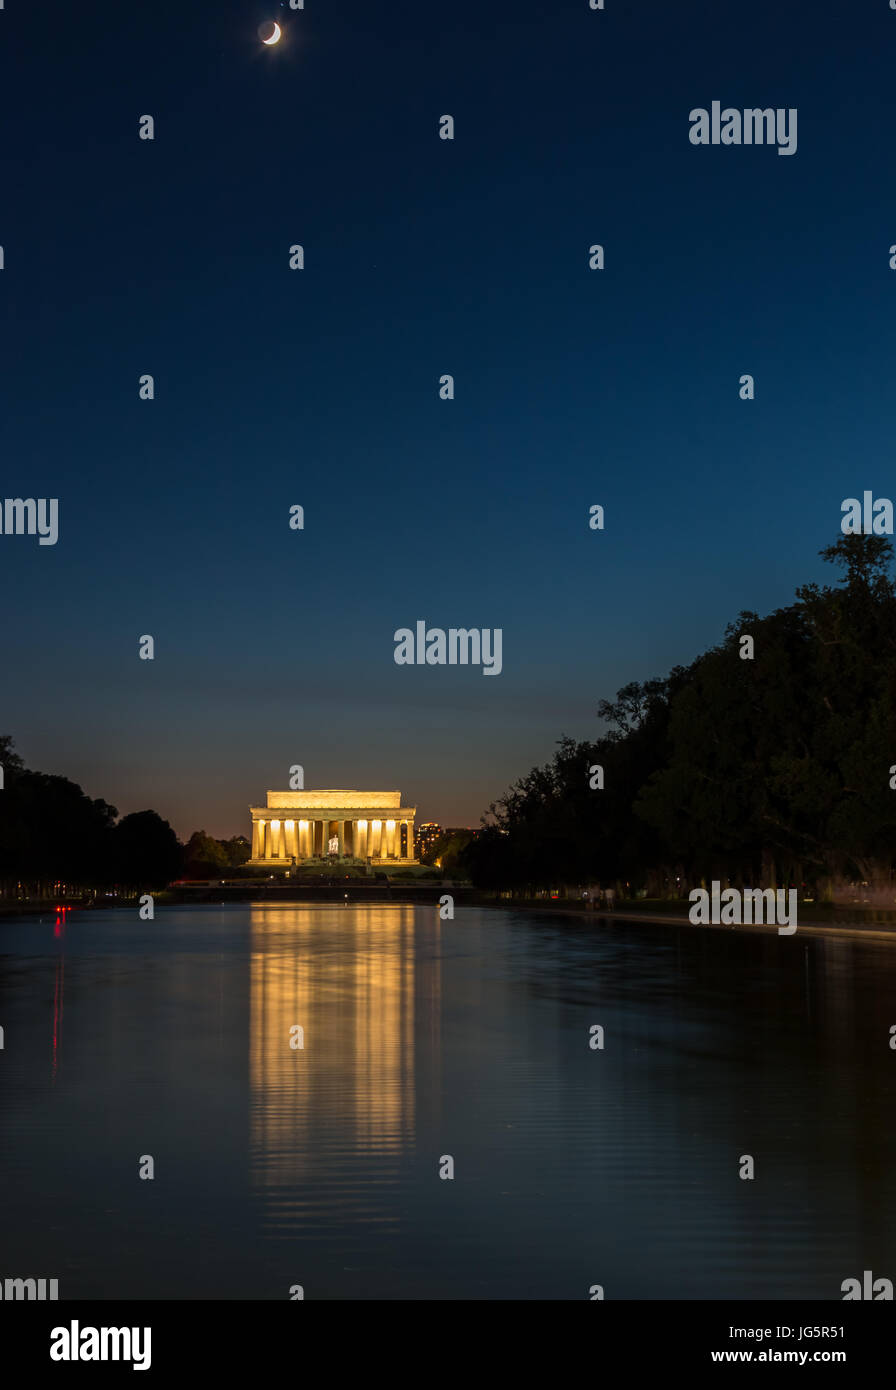 Lincoln Memorial Reflecting on Pool with Moon High in the Sky - Stock Image